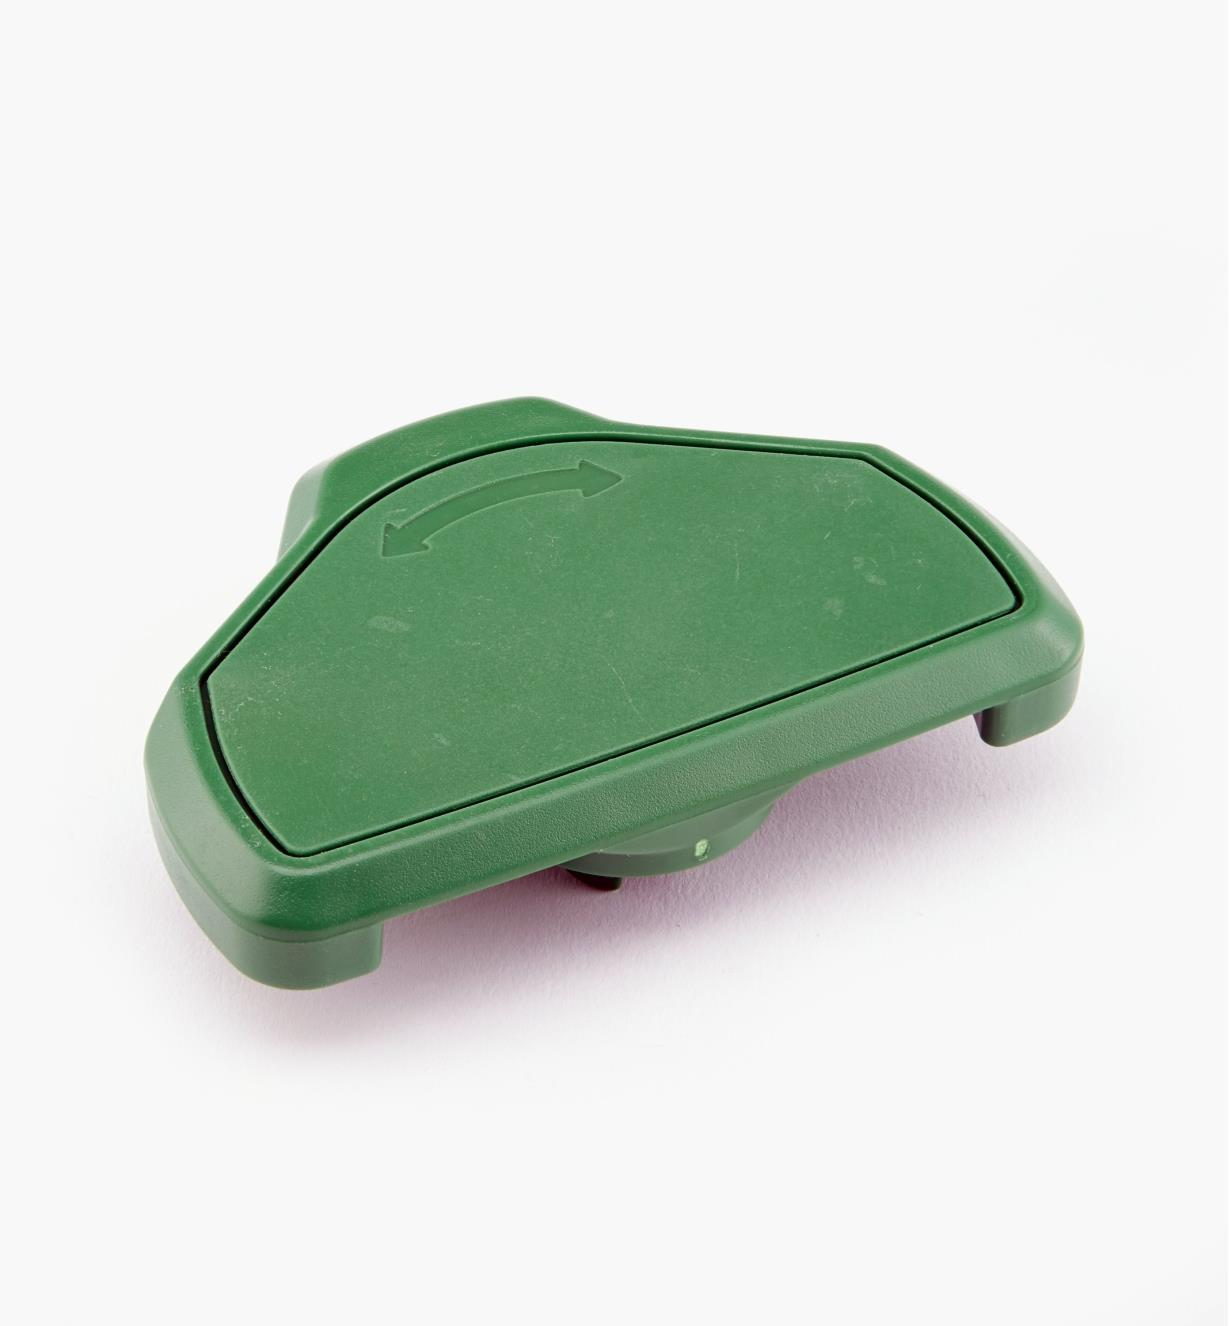 68K4624 - Green Regular Latch, each